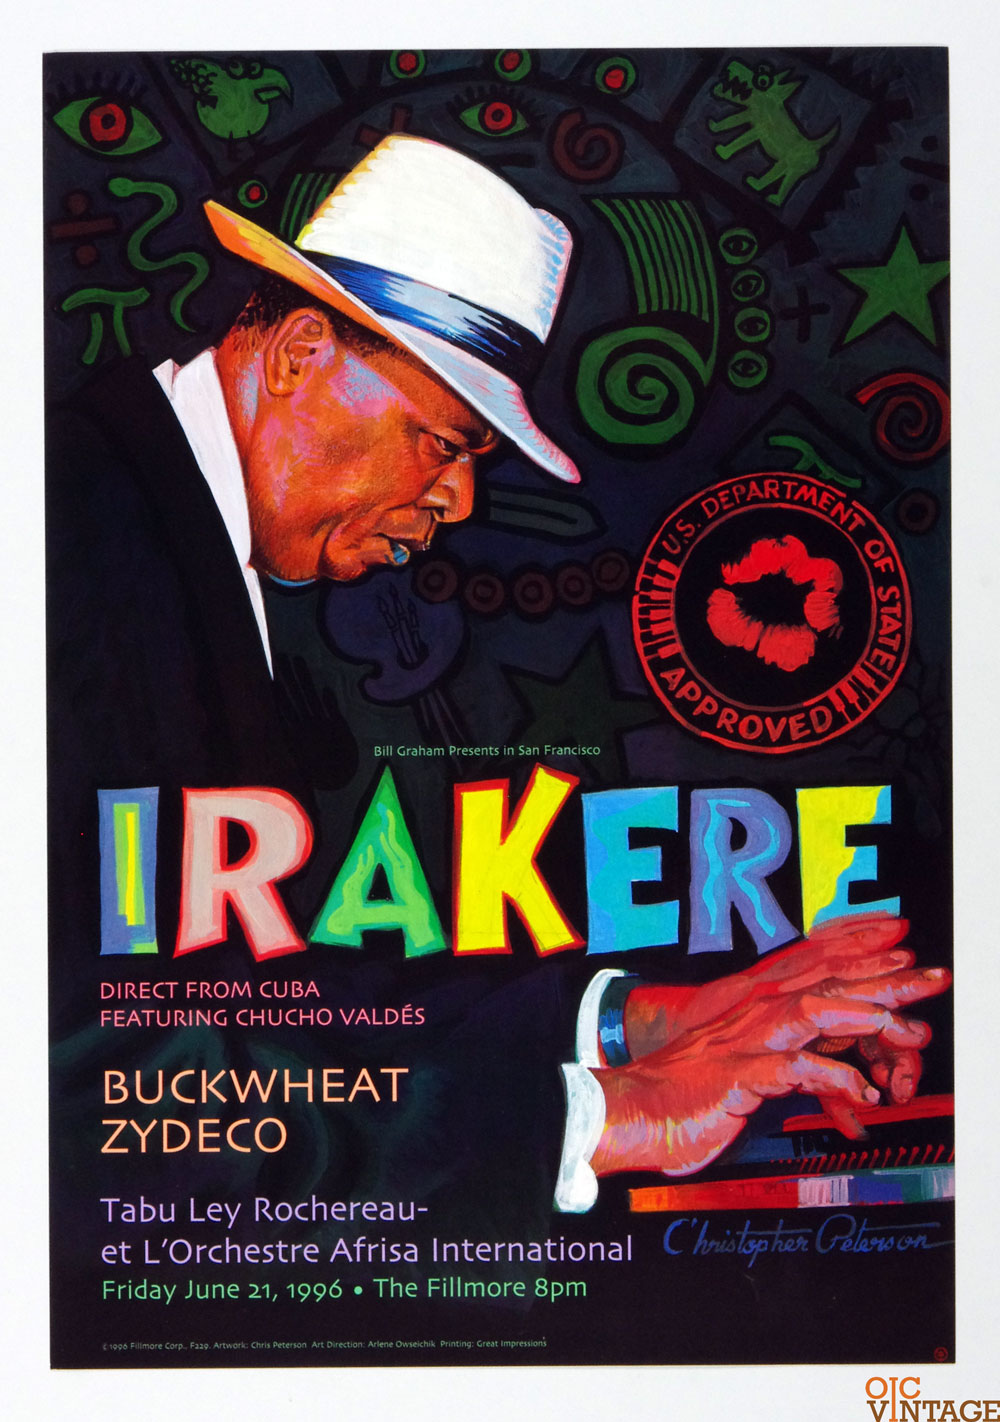 Bill Graham Presents Poster 1996 Jun 21 Irakere Chucho Valdes #229